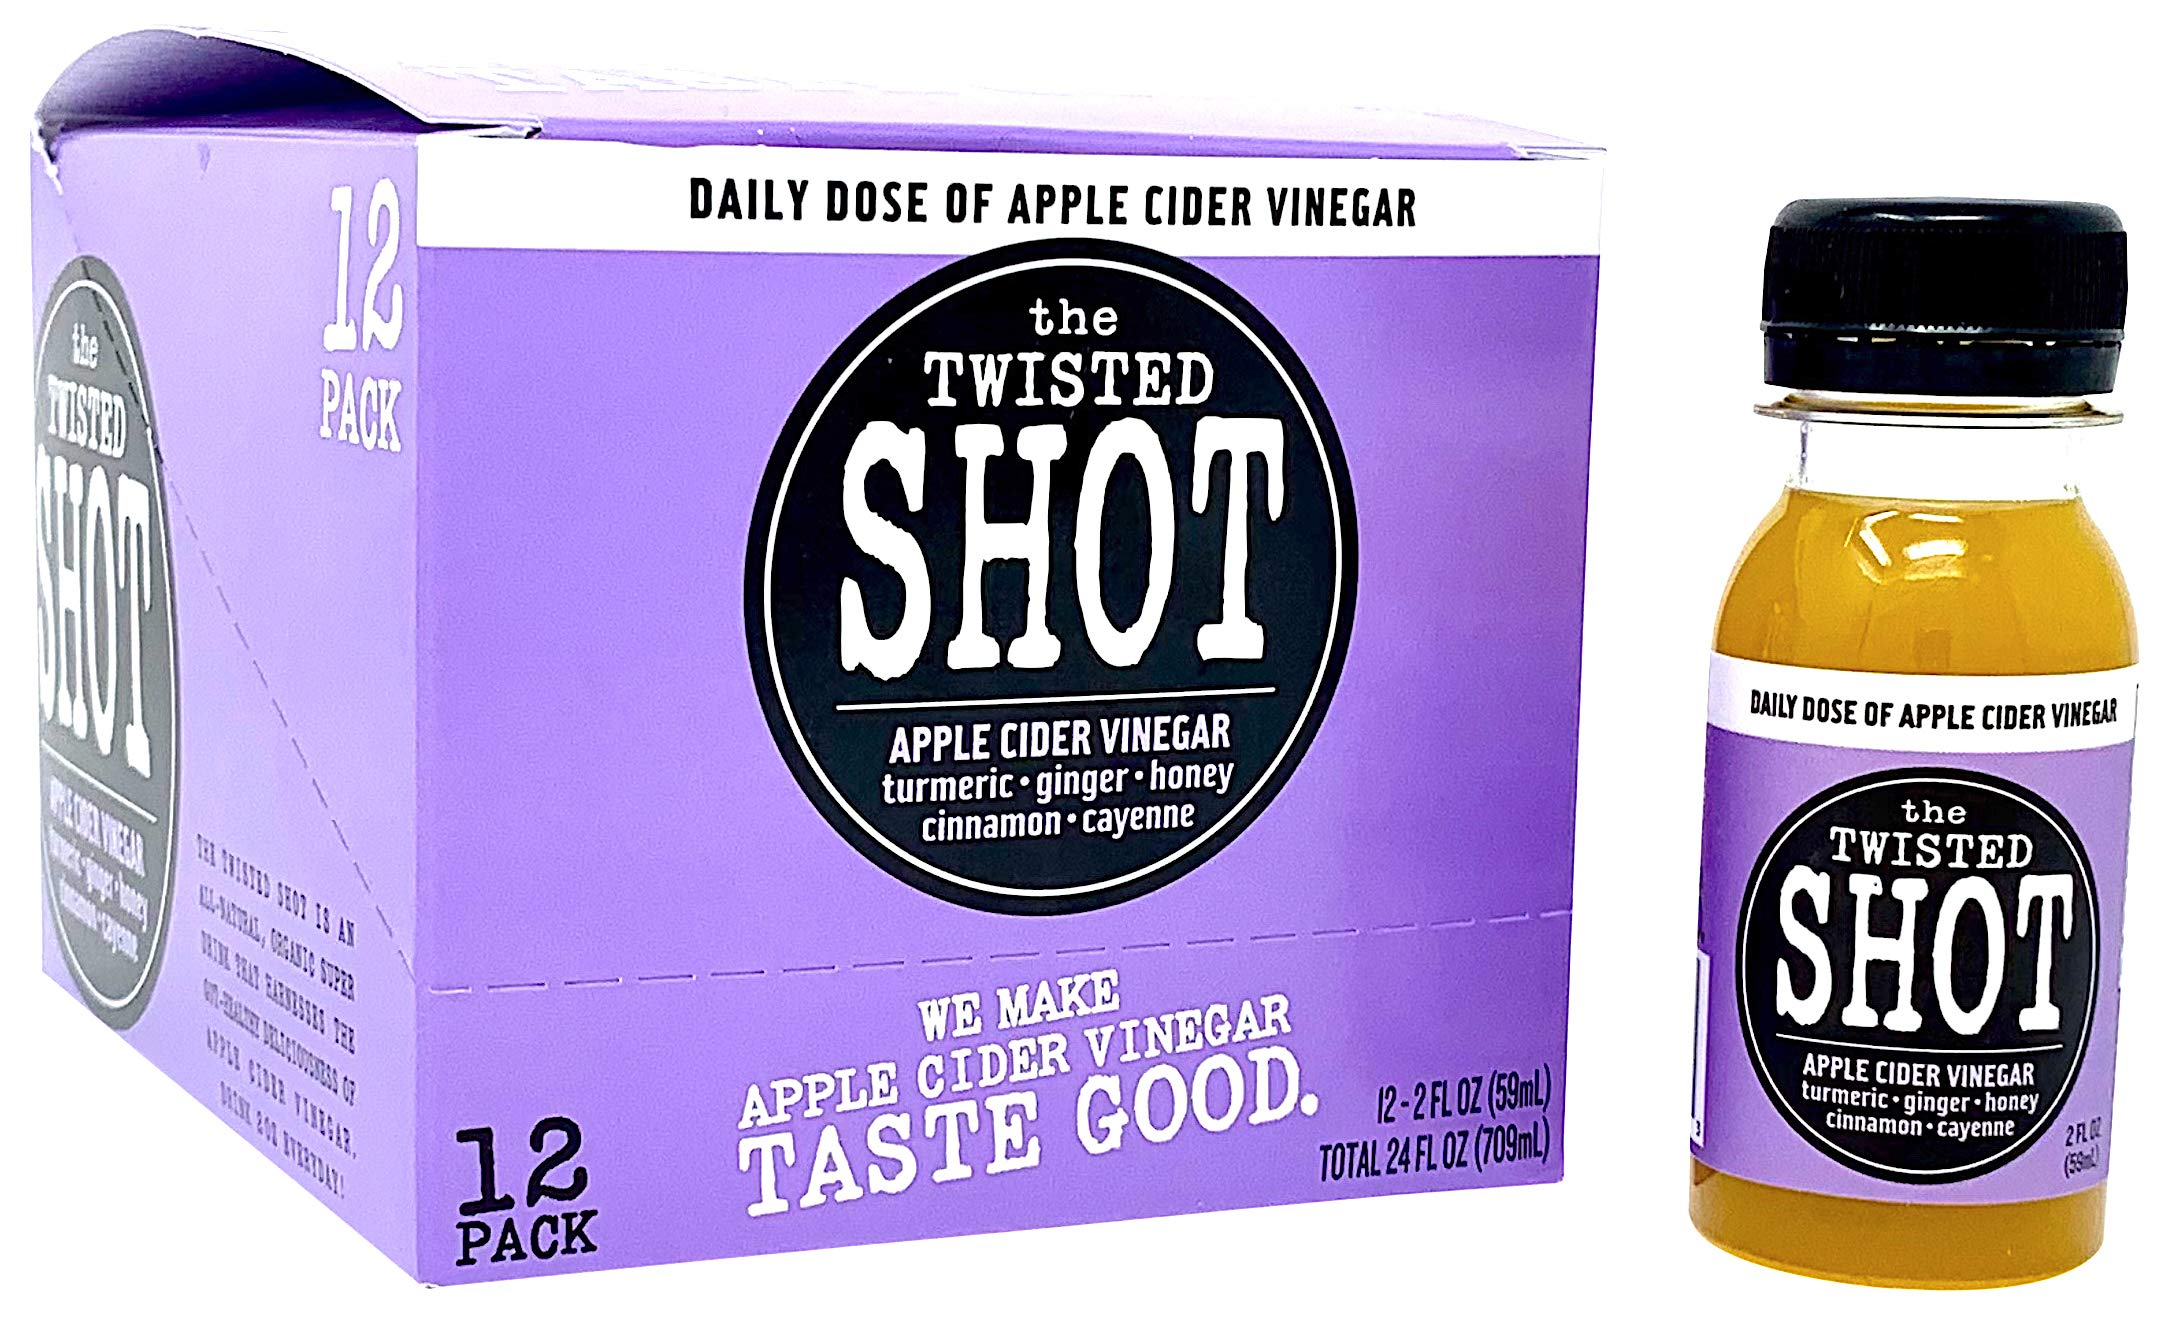 The Twisted Shot - Organic Apple Cider Vinegar Shots with Turmeric, Ginger, Cinnamon, Honey & Cayenne - 12-Pack of 2oz Shots